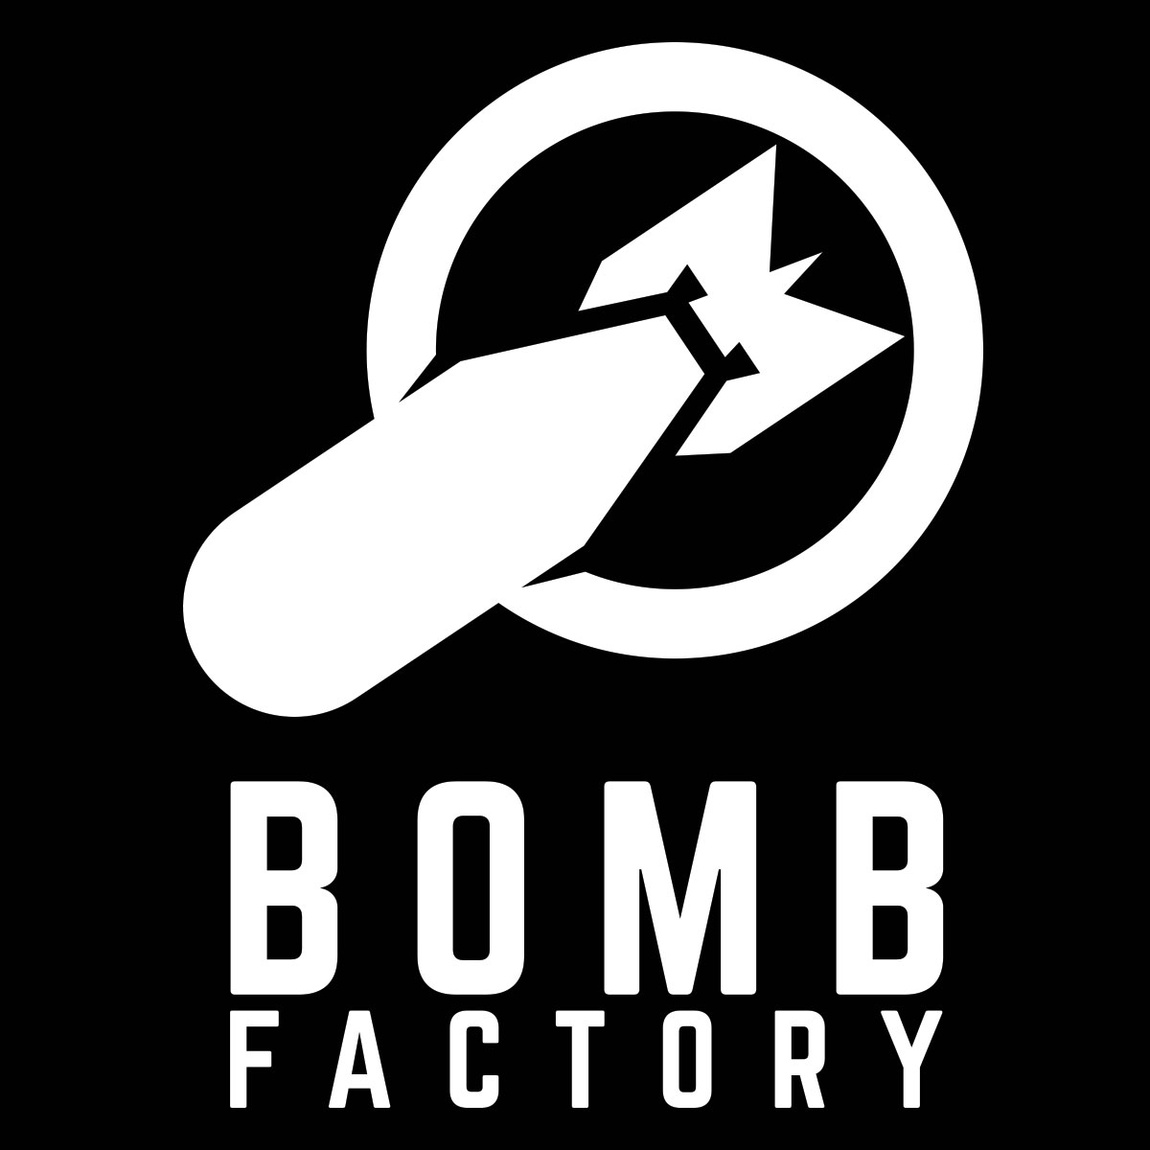 The Bomb Factory: Live Music Venue (Dallas, TX)